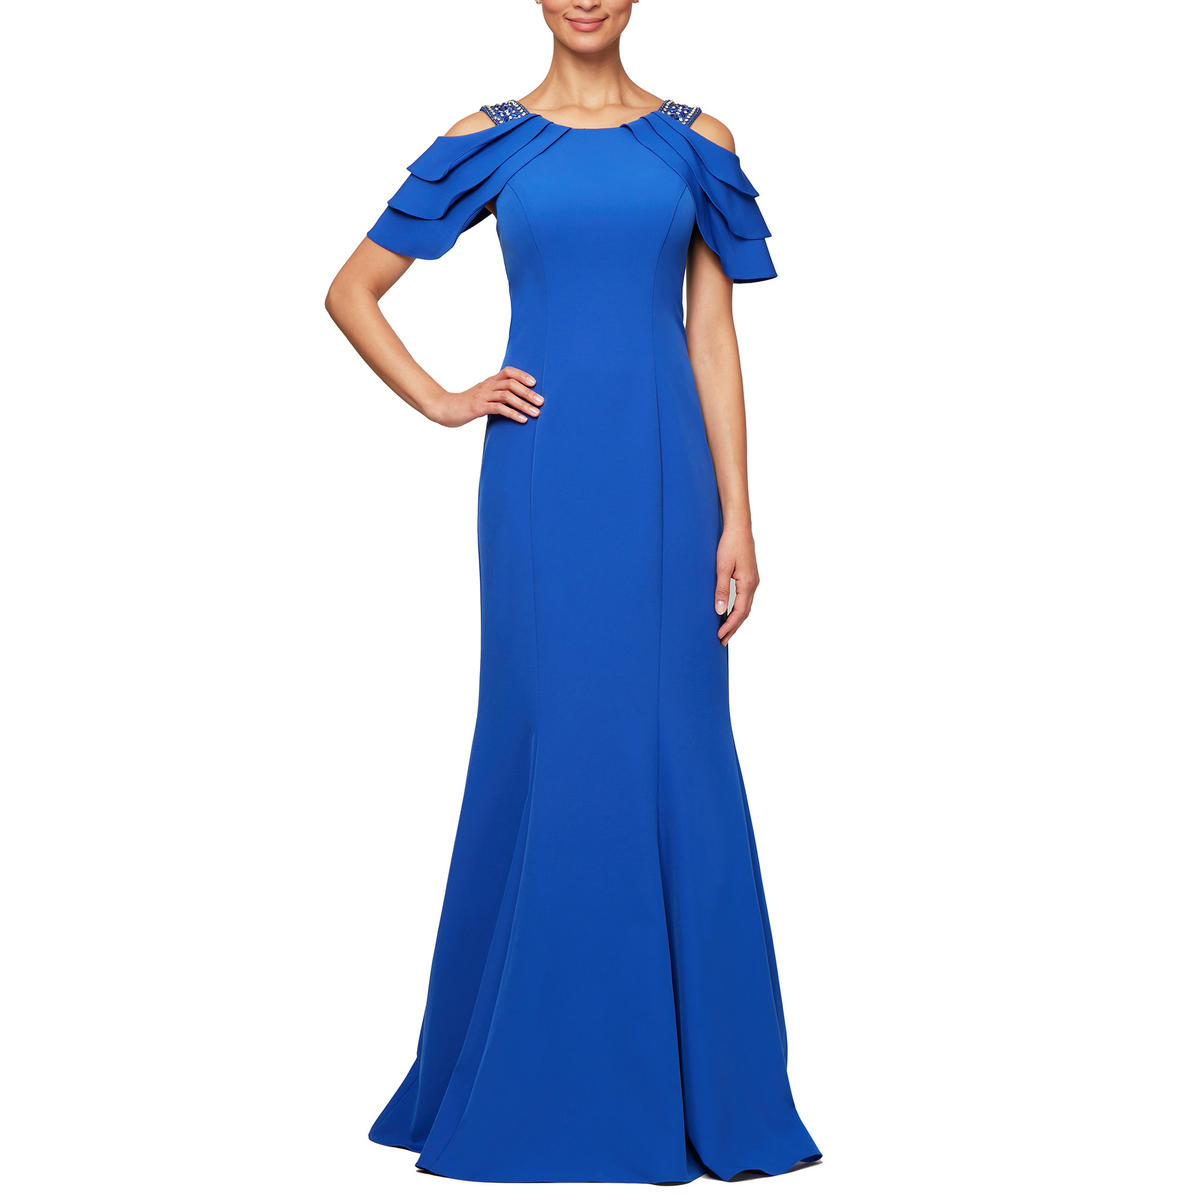 ALEX APPAREL GROUP INC - Satin Gown-Beaded Off Shoulder